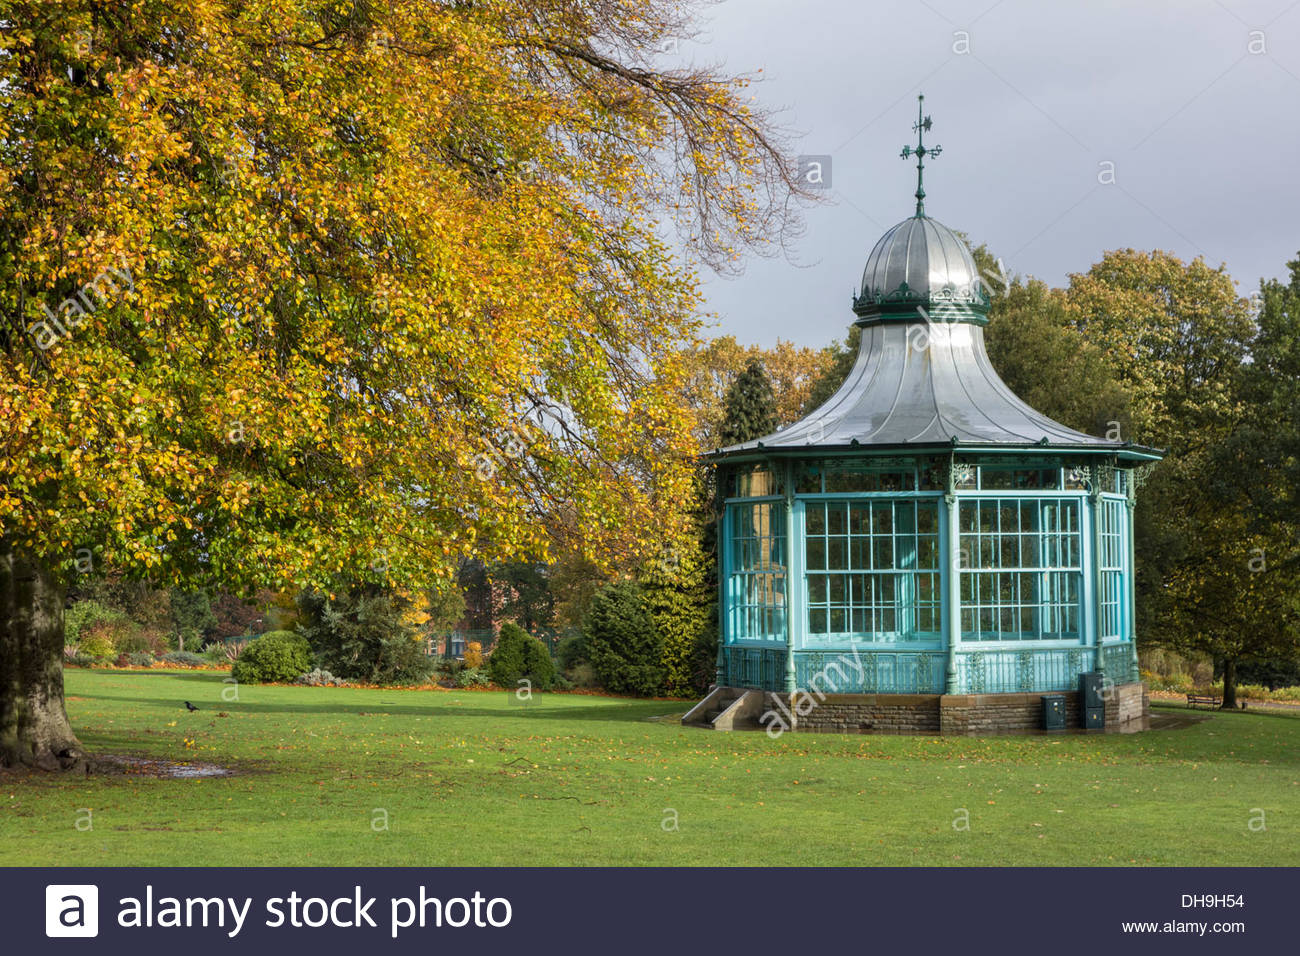 The bandstand at Weston Park, Sheffield with the trees in autumn colours - Stock Image